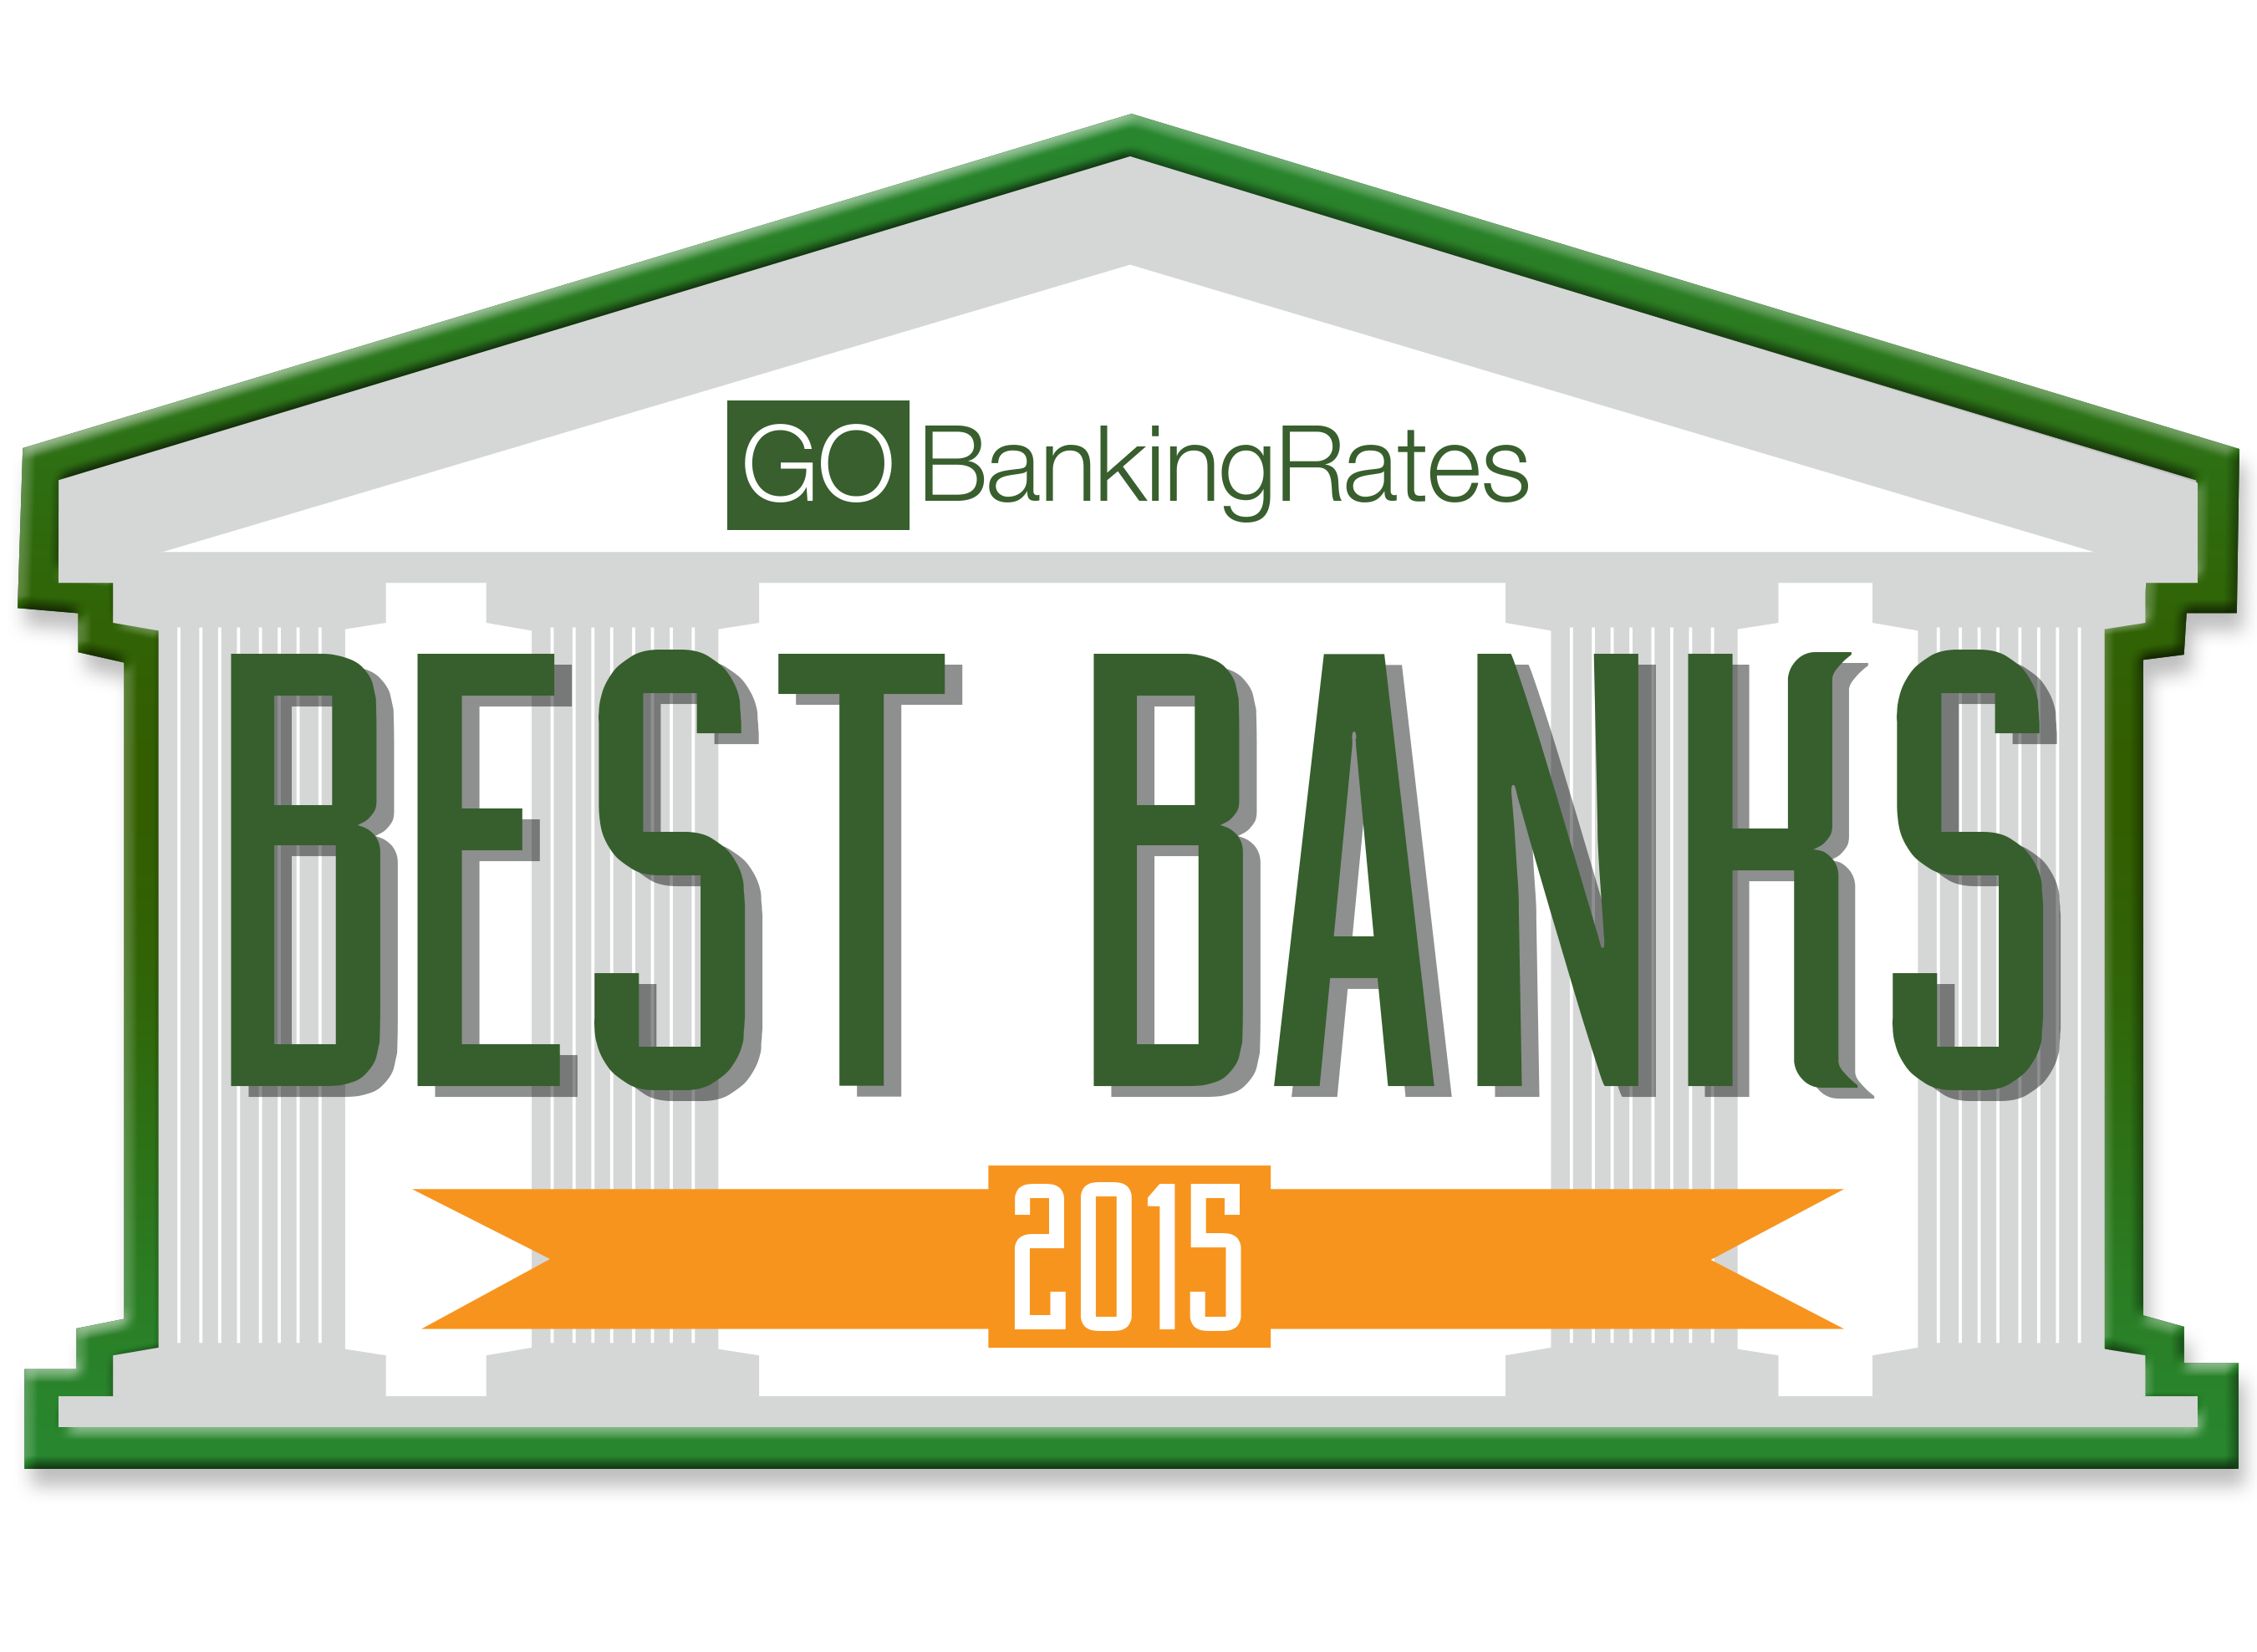 We Ranked All the Best Banks for 2015